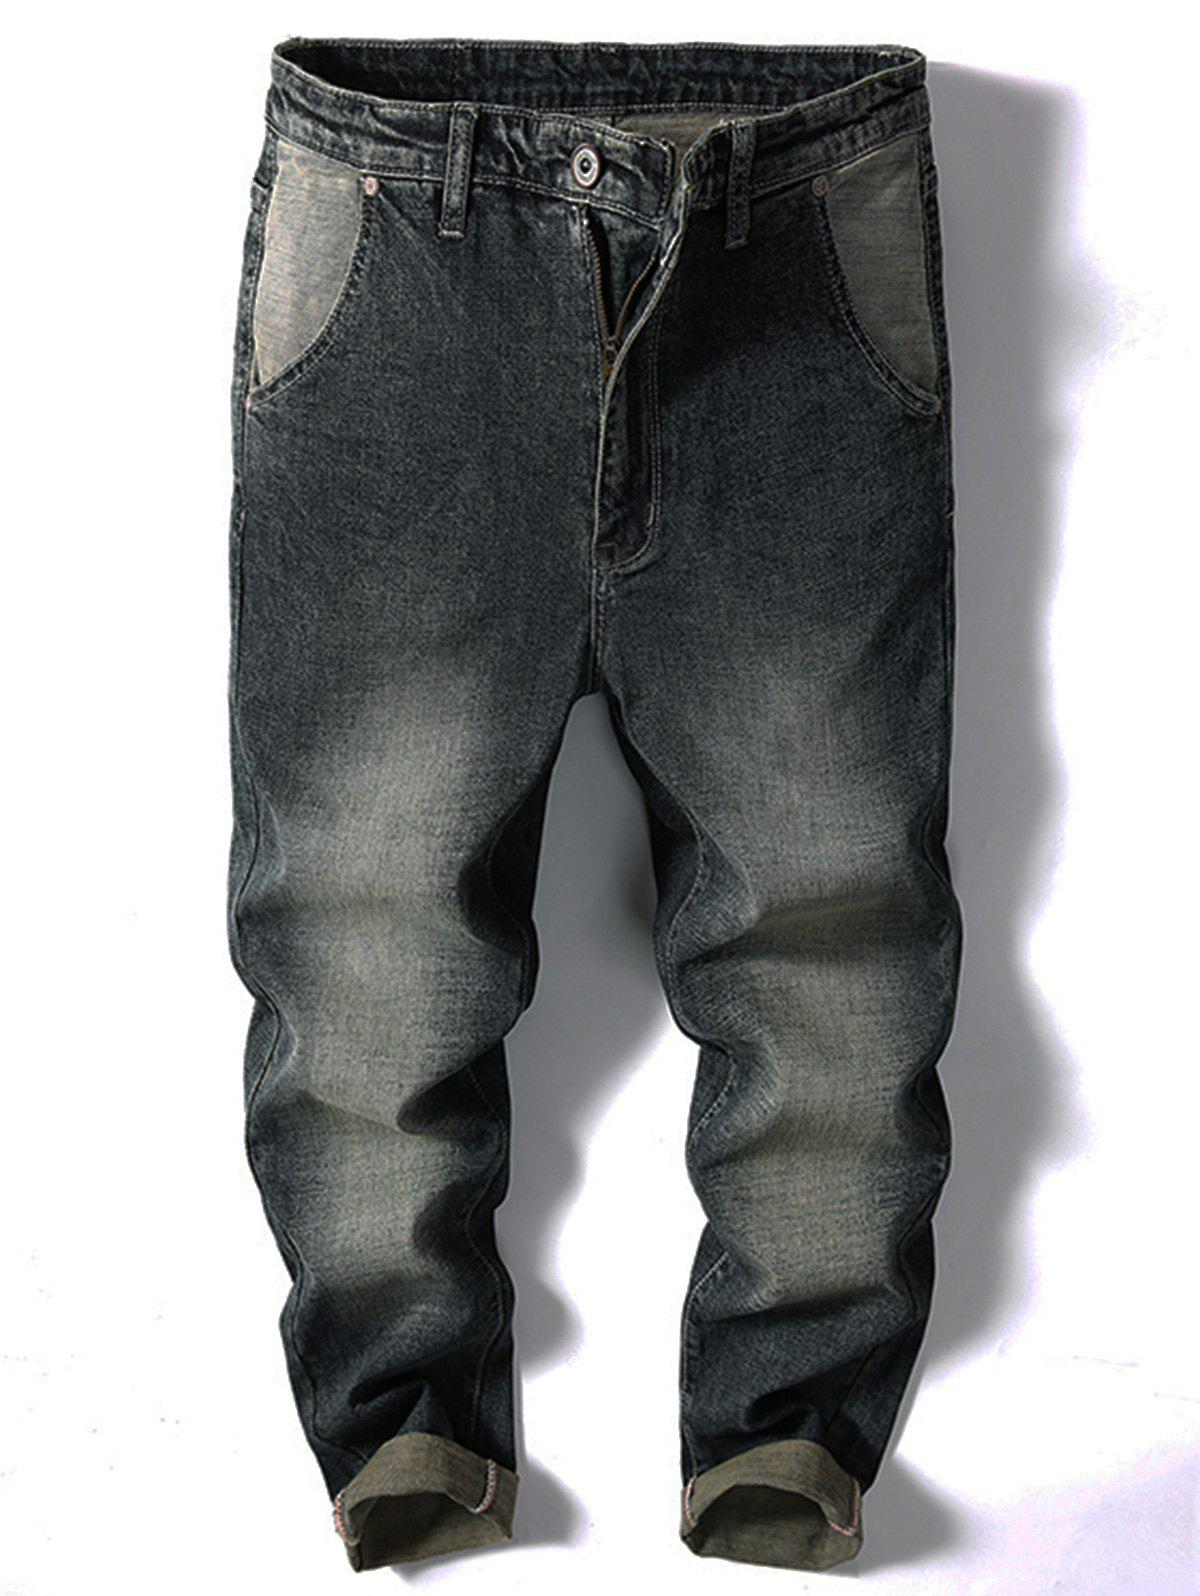 Store Casual Zipper Fly Faded Jeans